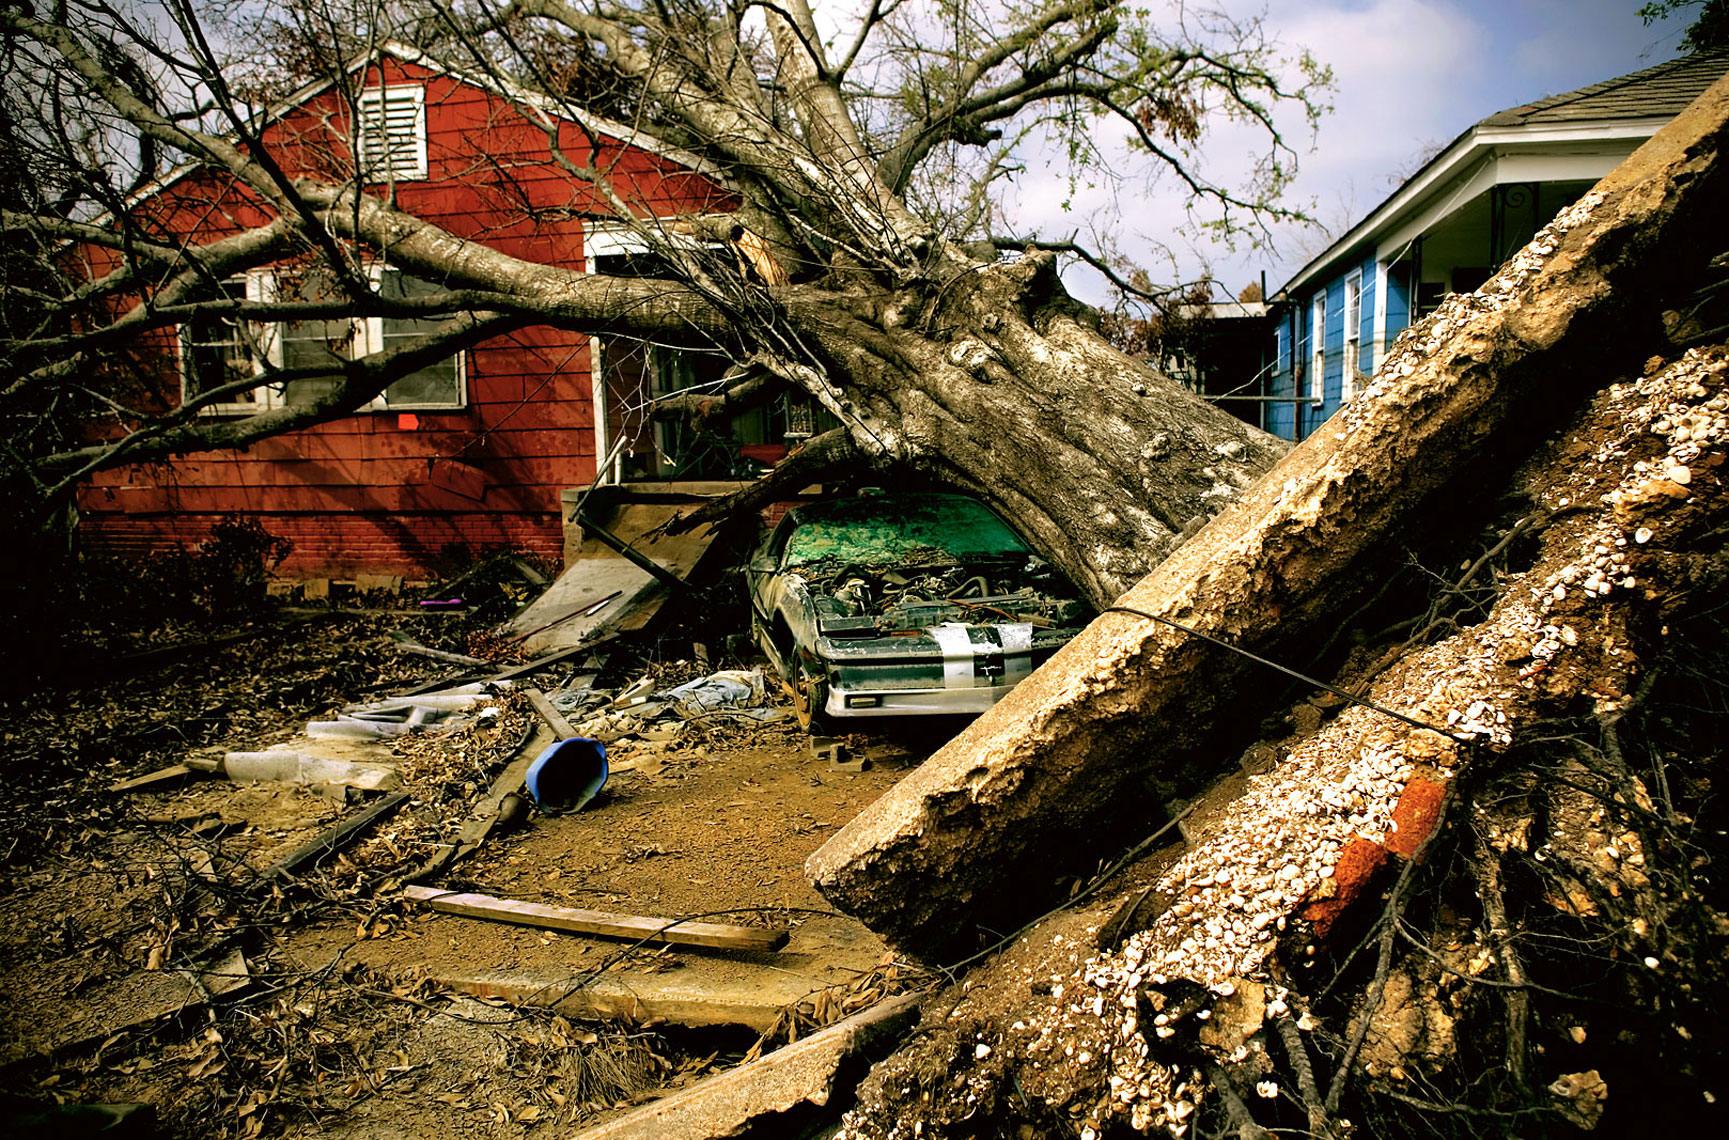 Hurricane Katrina_015| Robert Randall Advertising Photographer, Commercial Photographer, CGI, Portrait, and Lifestyle Photography